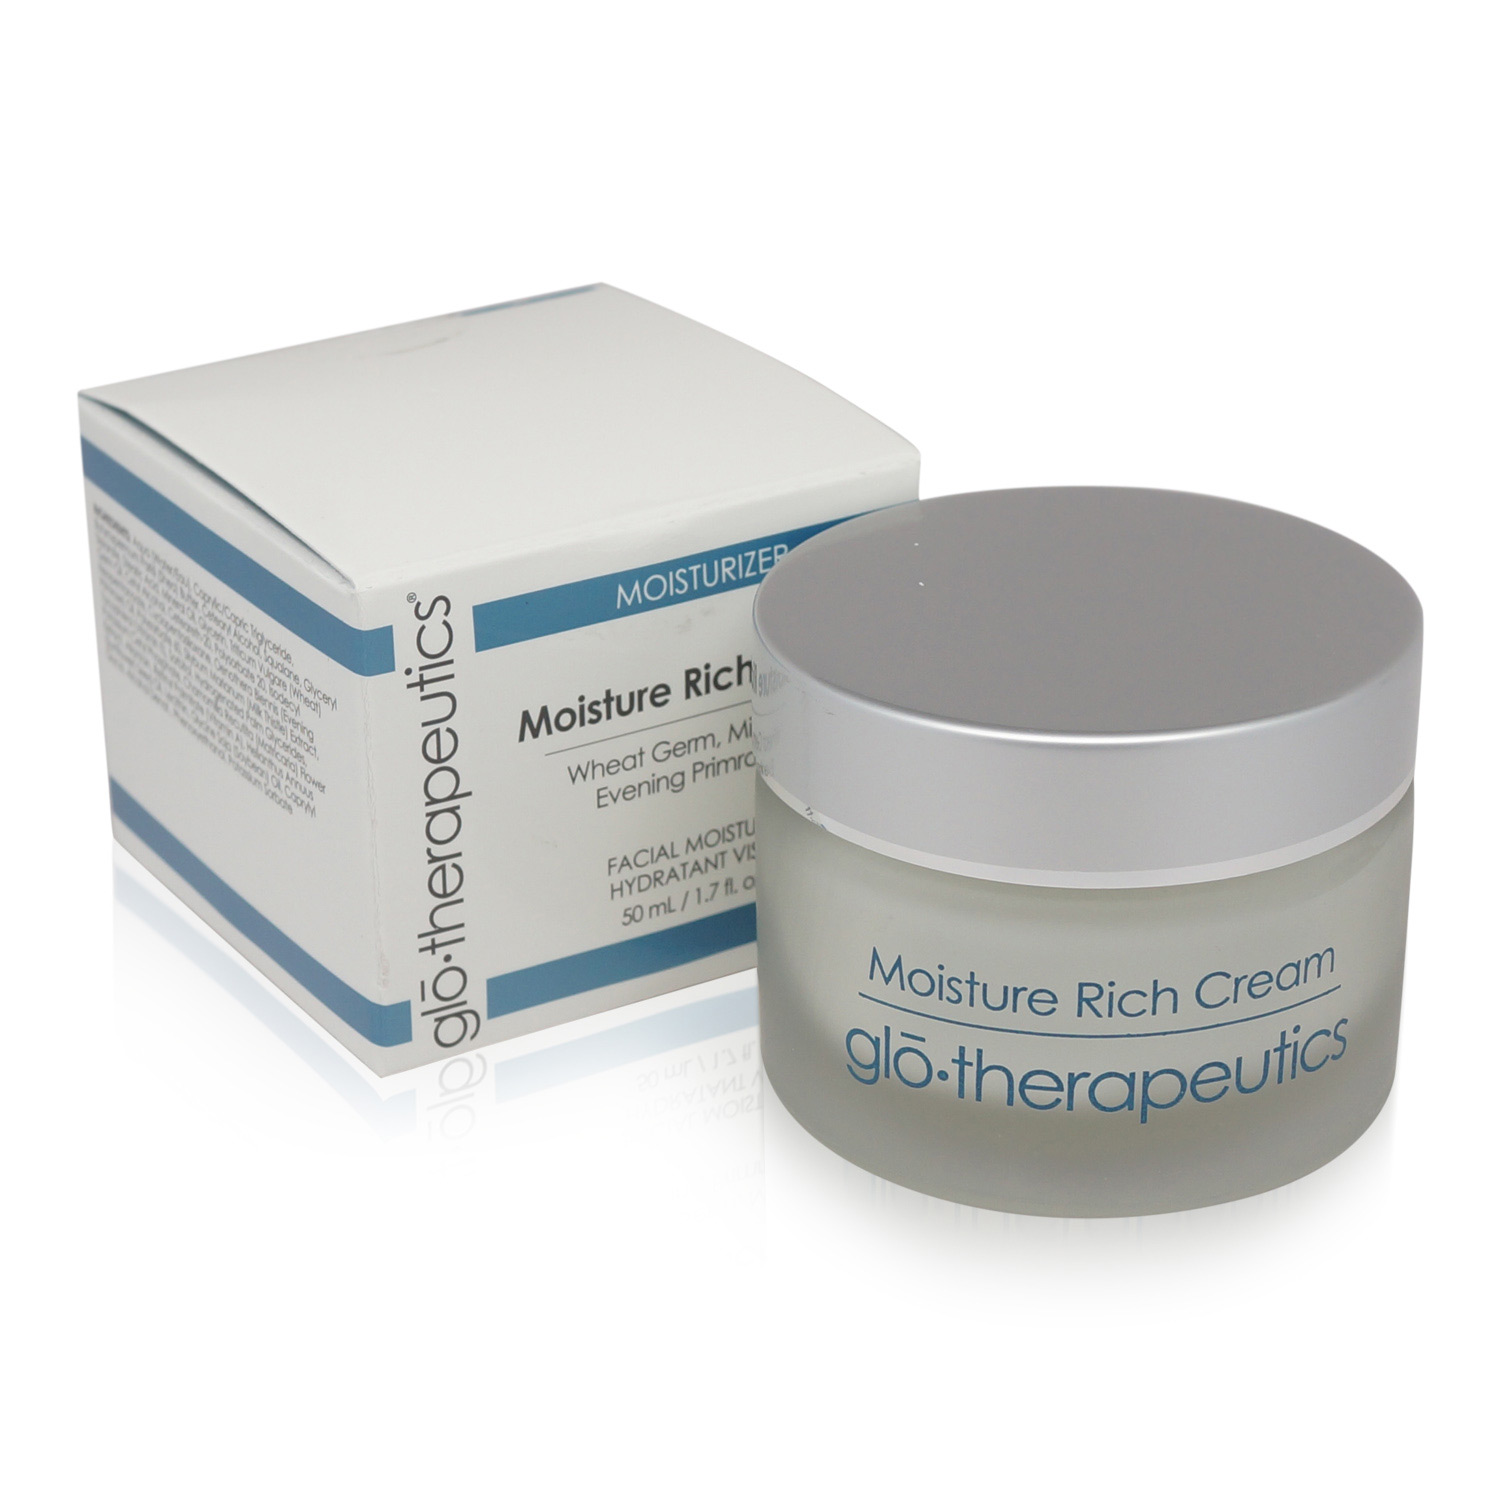 Glotherapeutics Moisture Rich Cream - 50ml/1.7oz